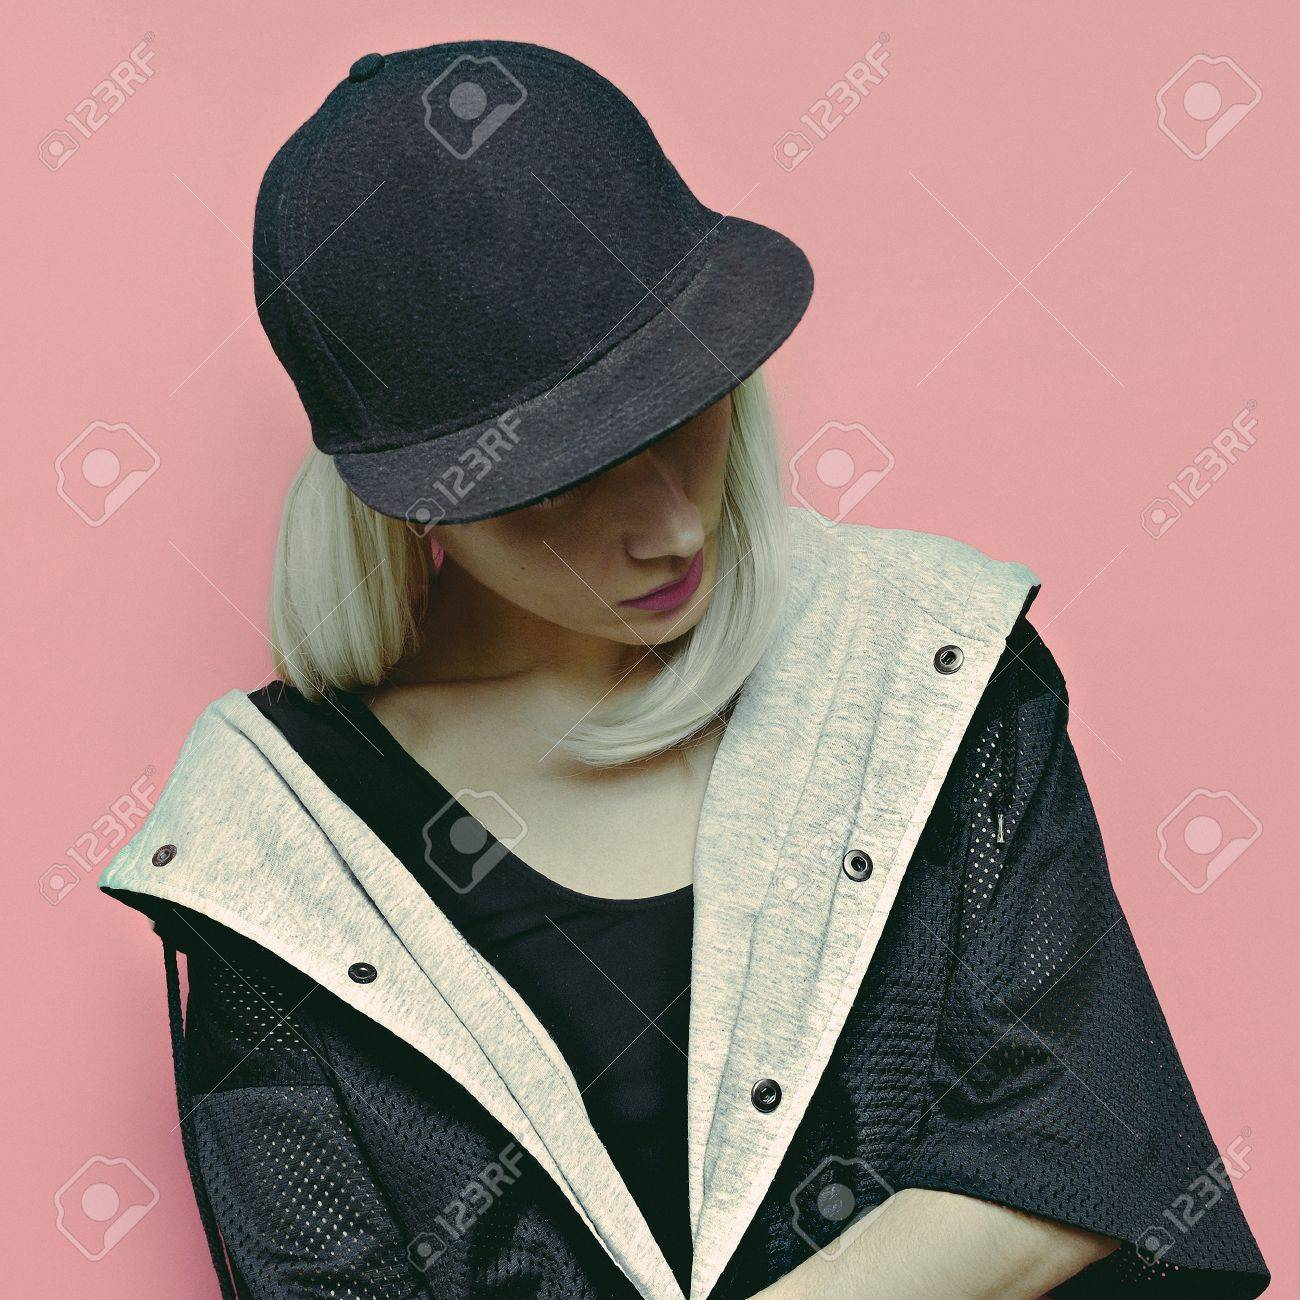 Hip Hop Girl Blonde Tomboy Cap And Stylish Clothes Urban Style